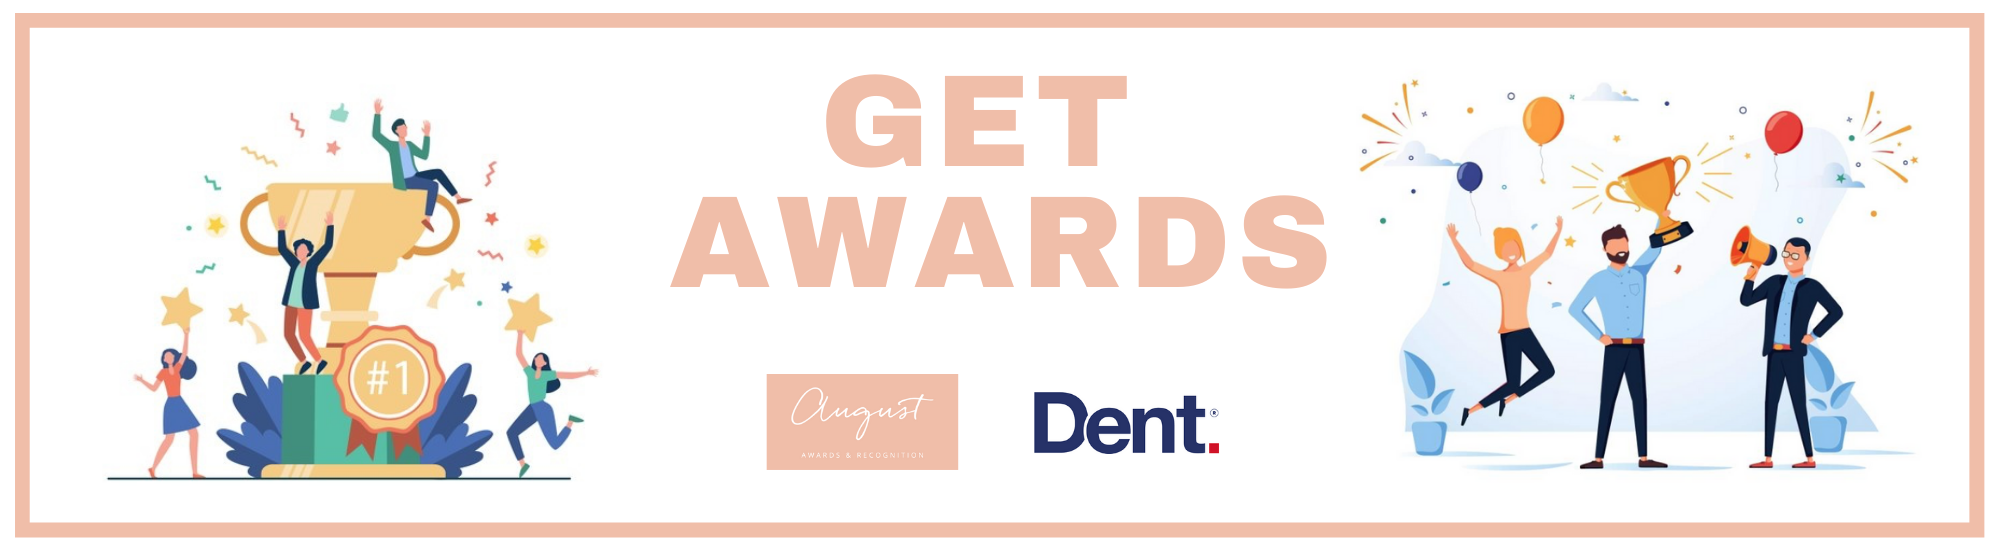 Get Awards sessions with Dent and Donna O'Toole